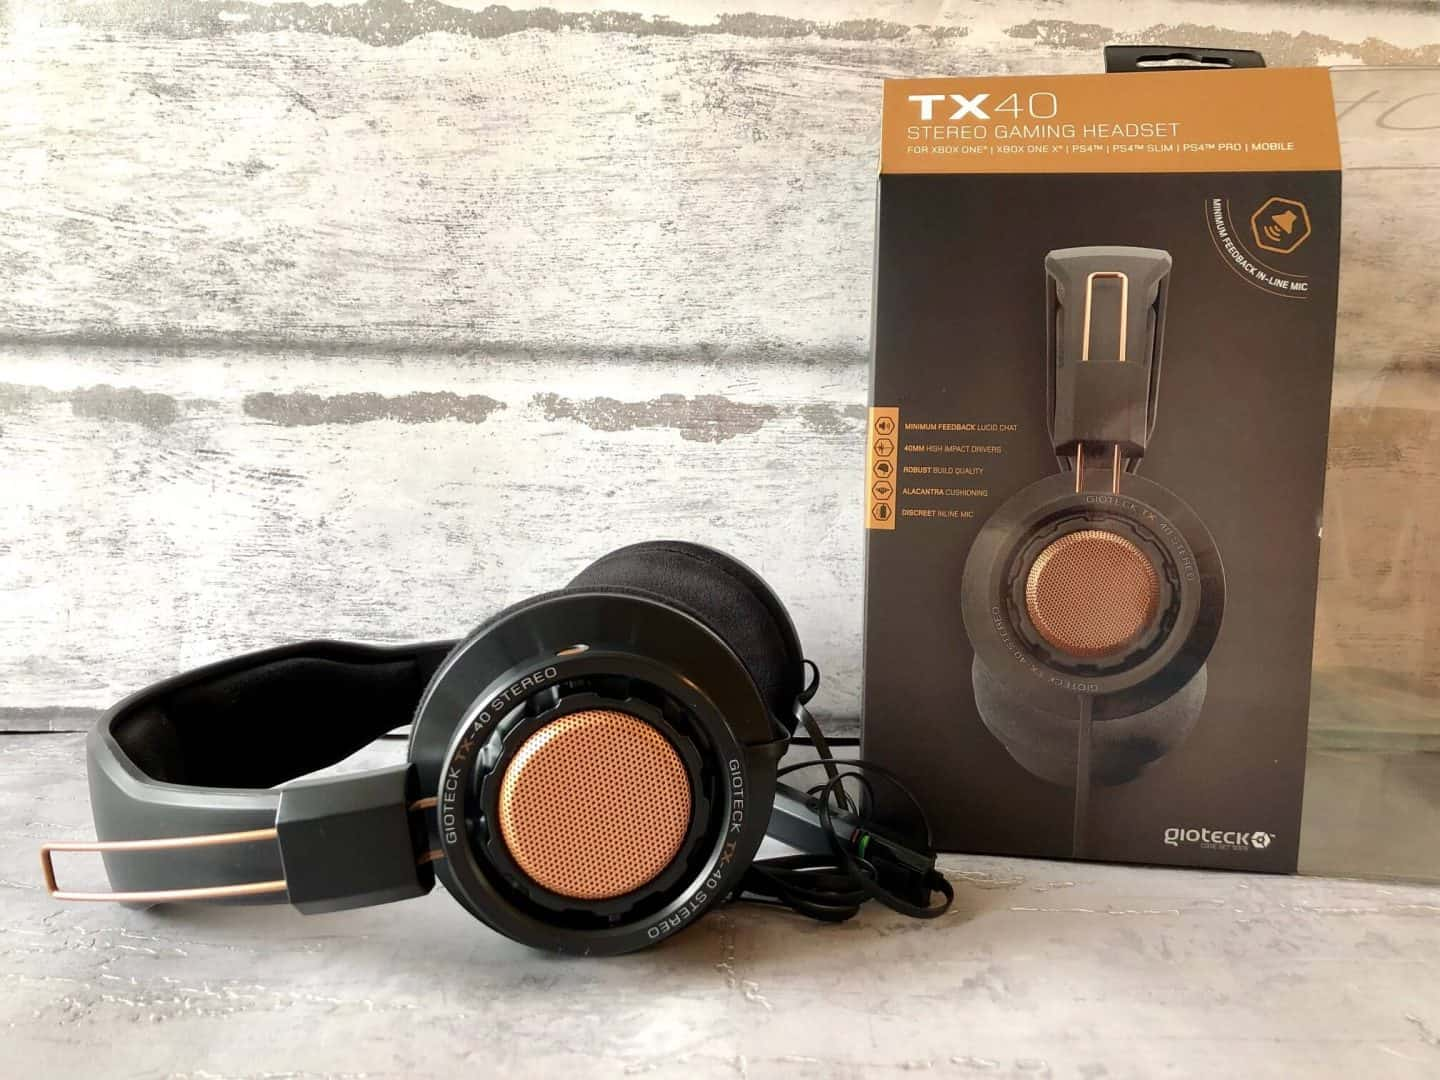 GioTeck TX-40 Xbox One, PS4, PC Headset